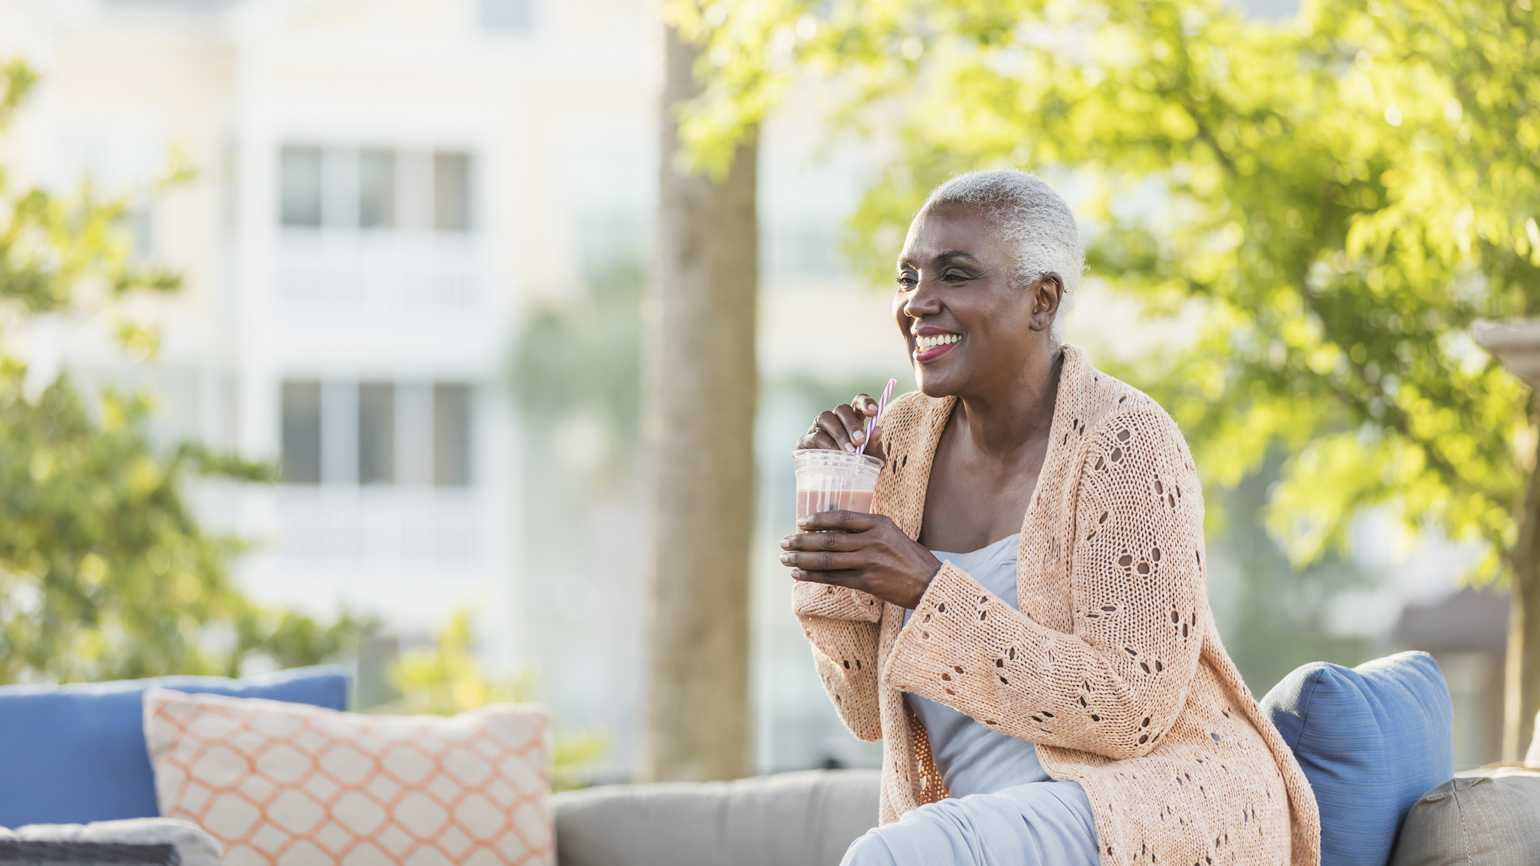 A woman in her golden years outside drinking a smoothie.